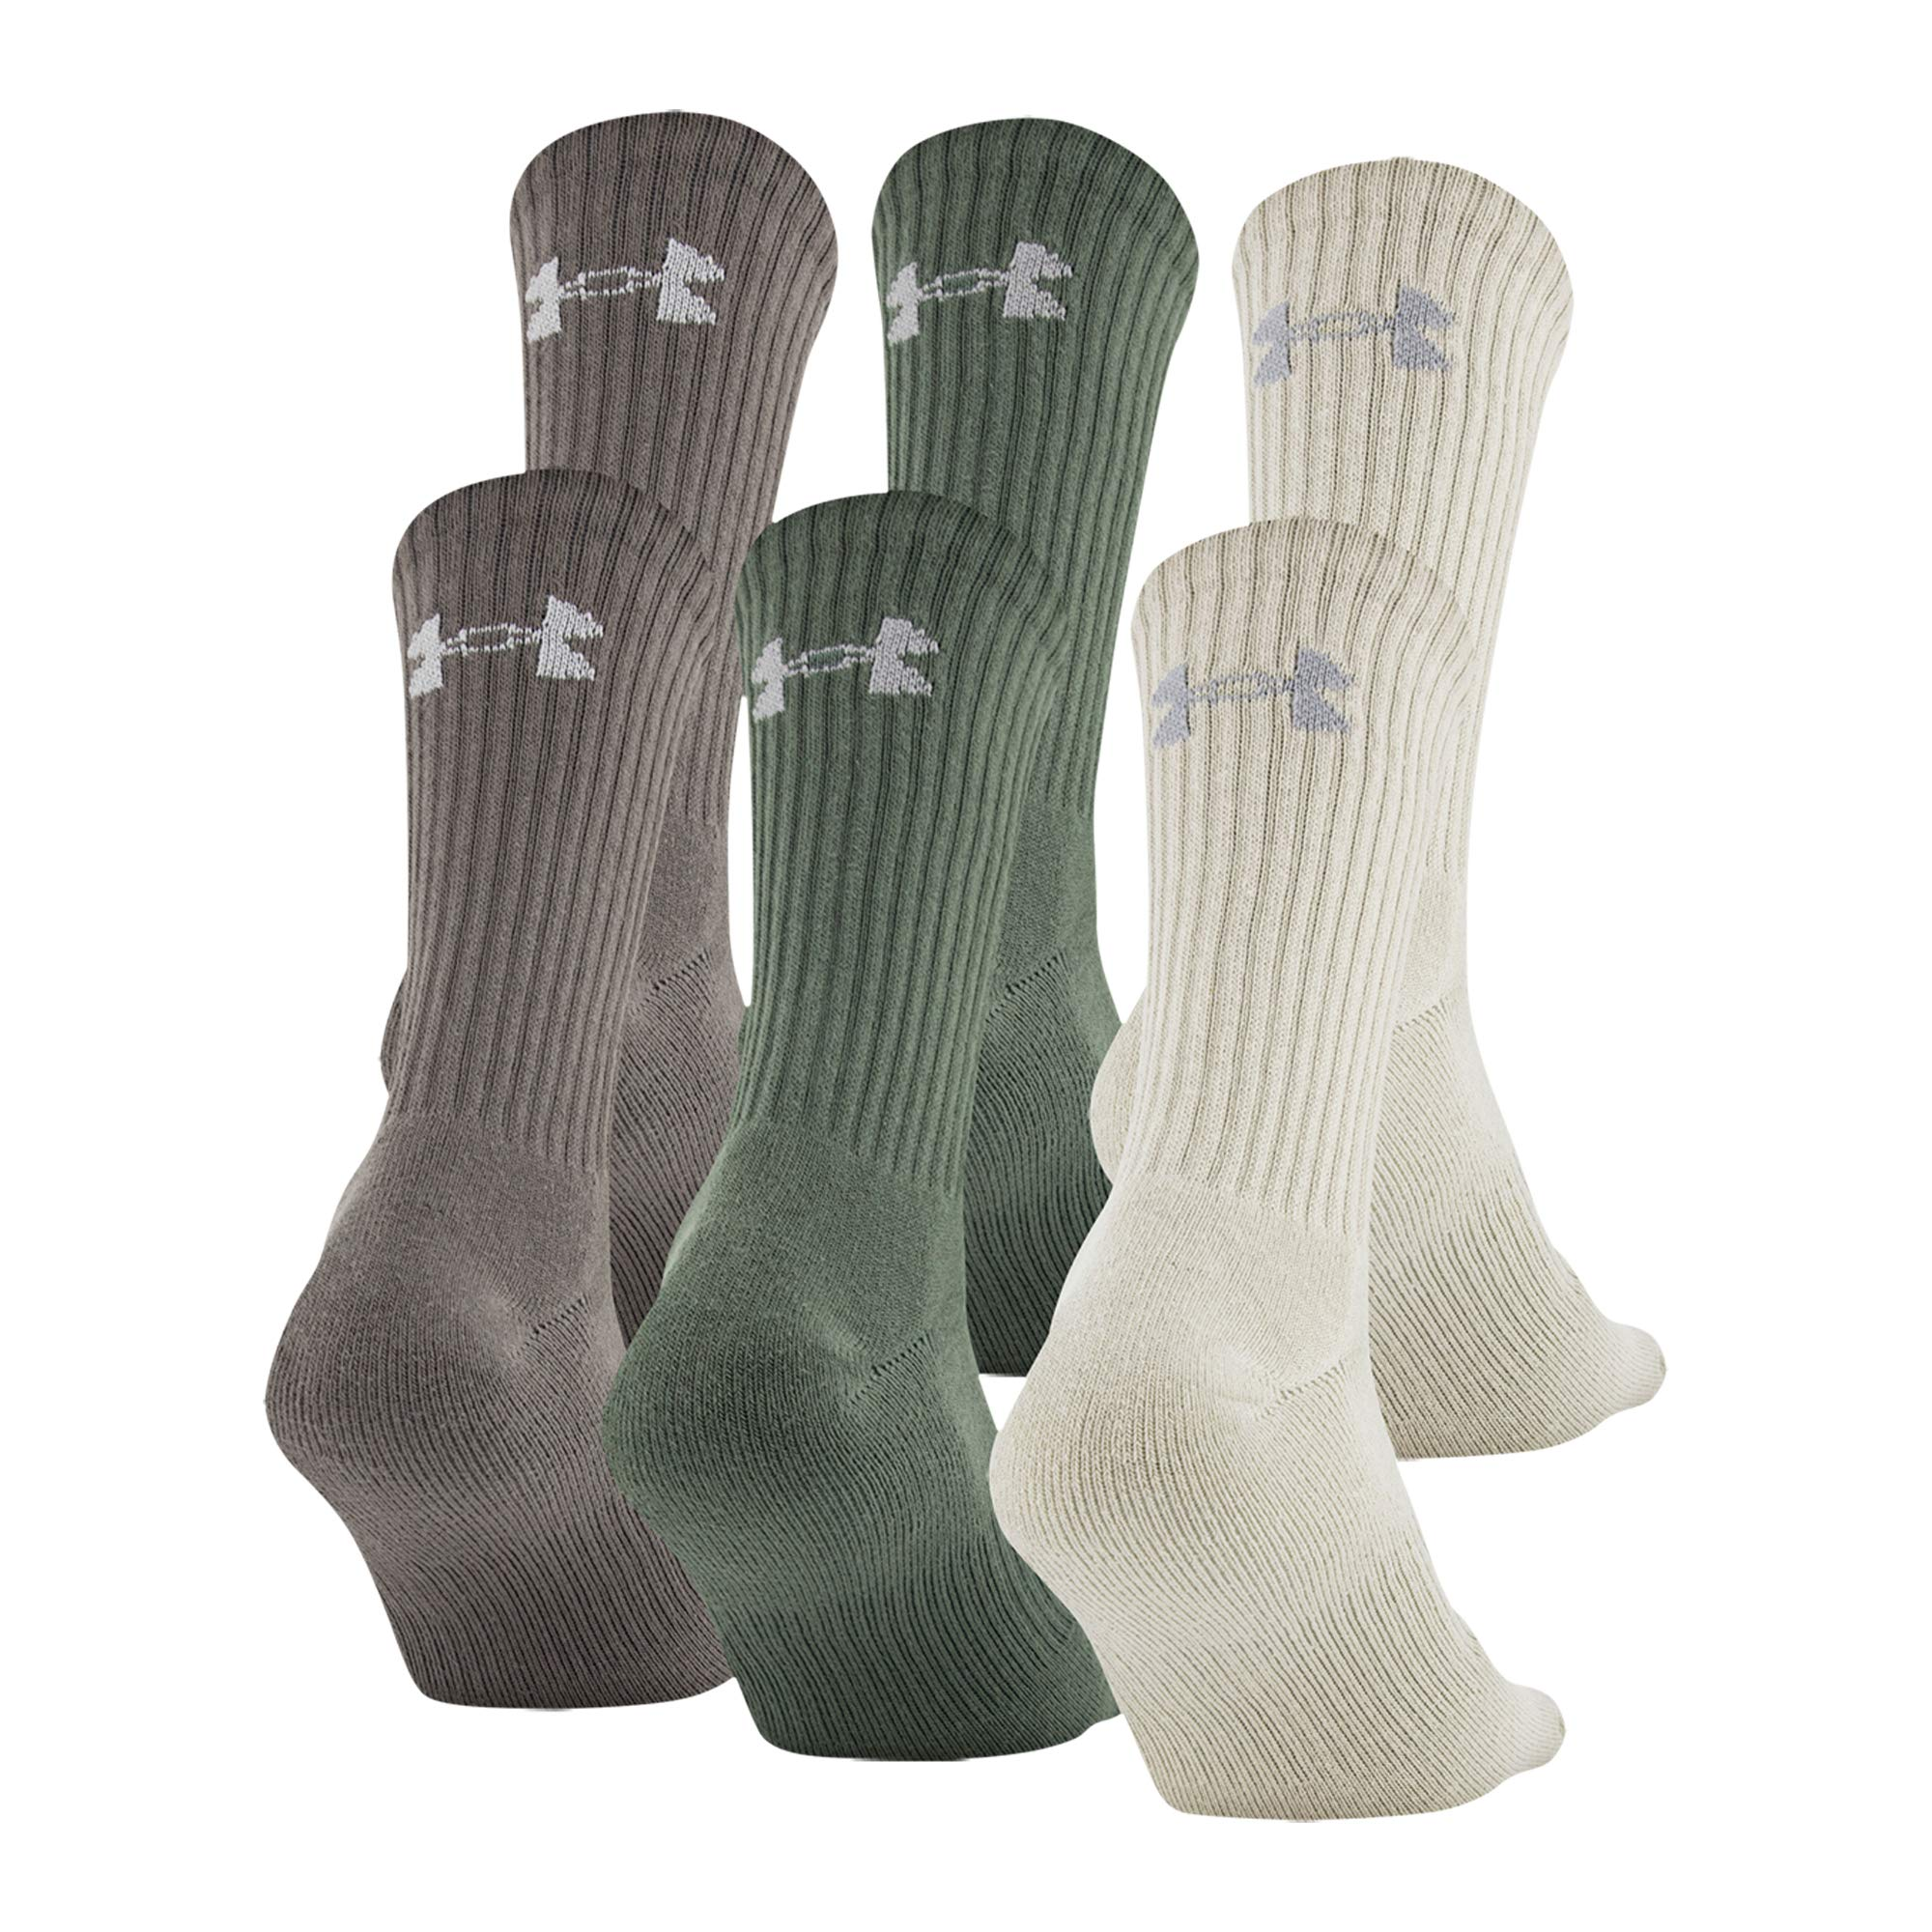 Under Armour Men's Charged Cotton 2.0 Socks, 6-Pair, Neutral Assorted, Large by Under Armour